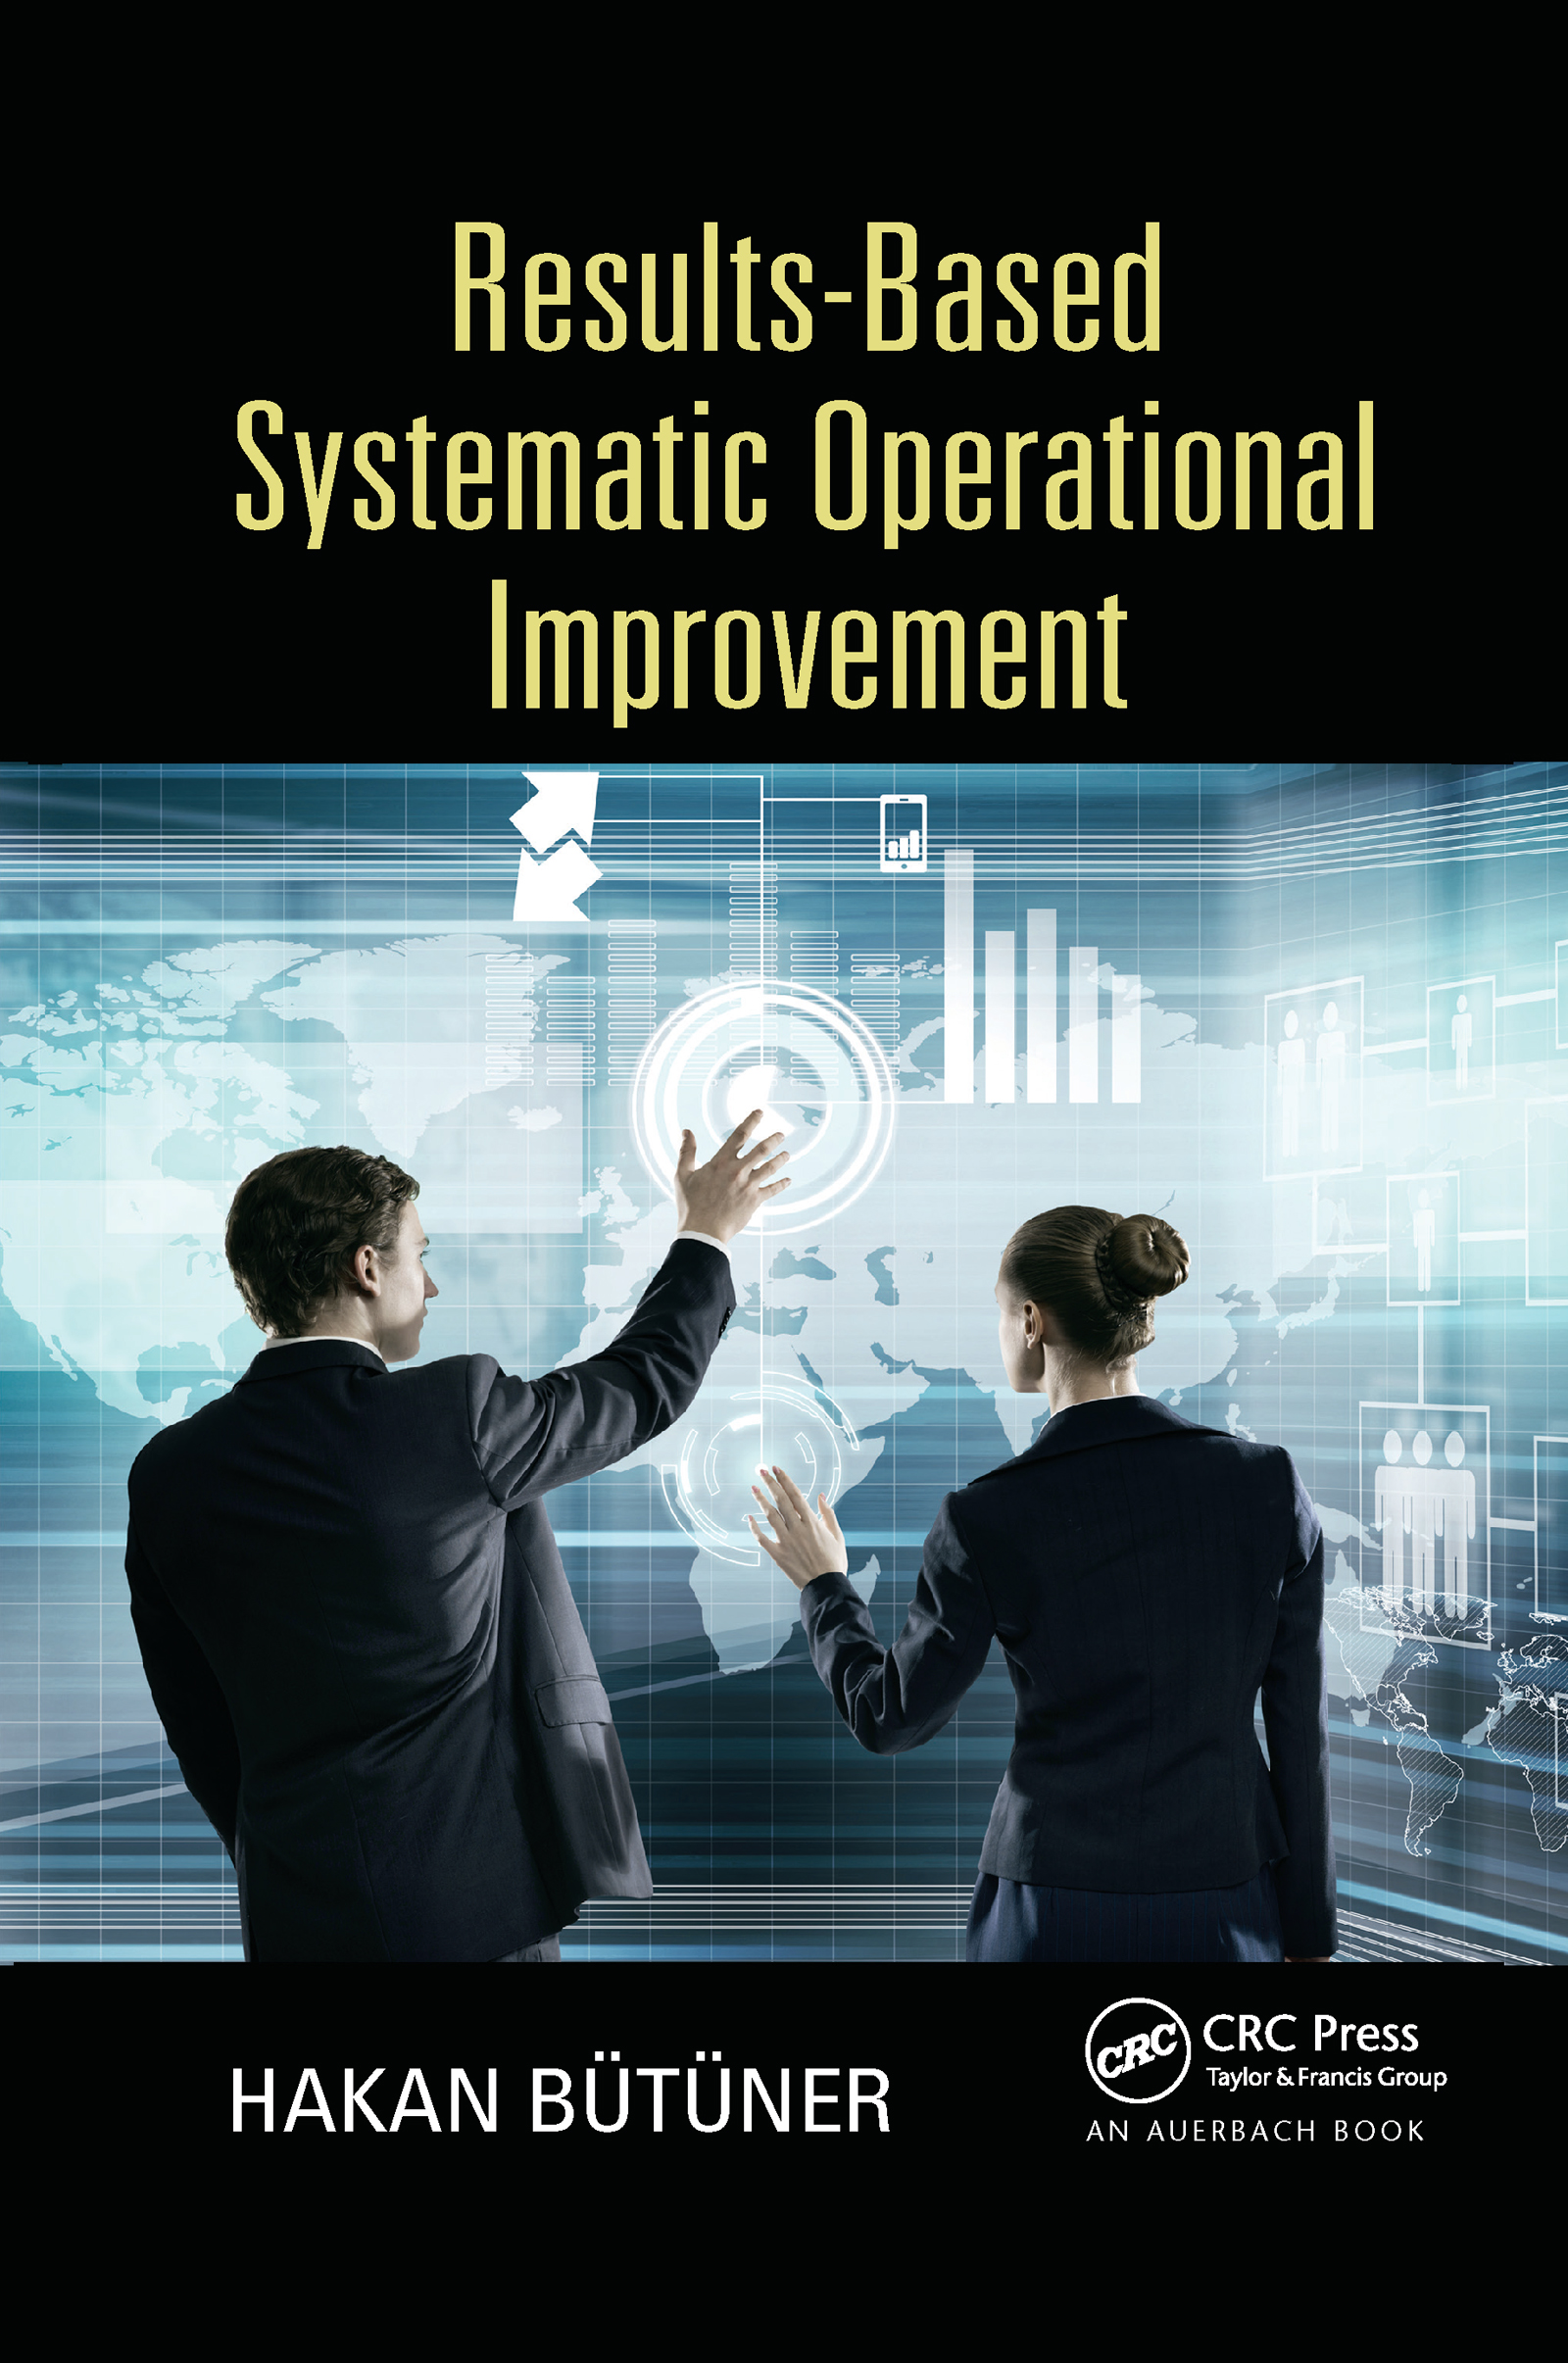 Results-Based Systematic Operational Improvement